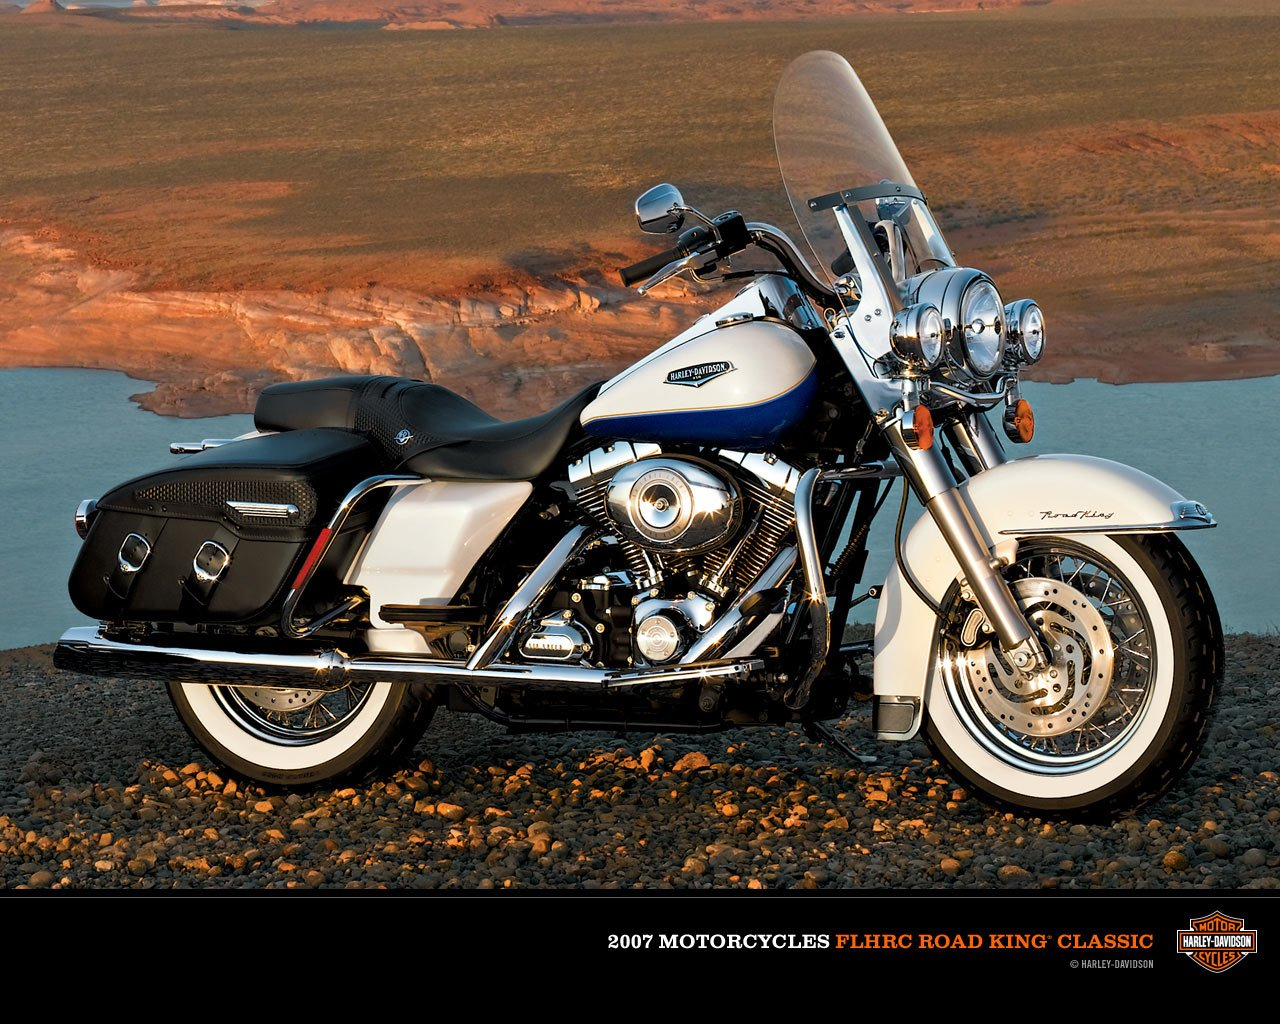 HD Harley Davidson Wallpaper bestscreenwallpapercom Harley 1280x1024